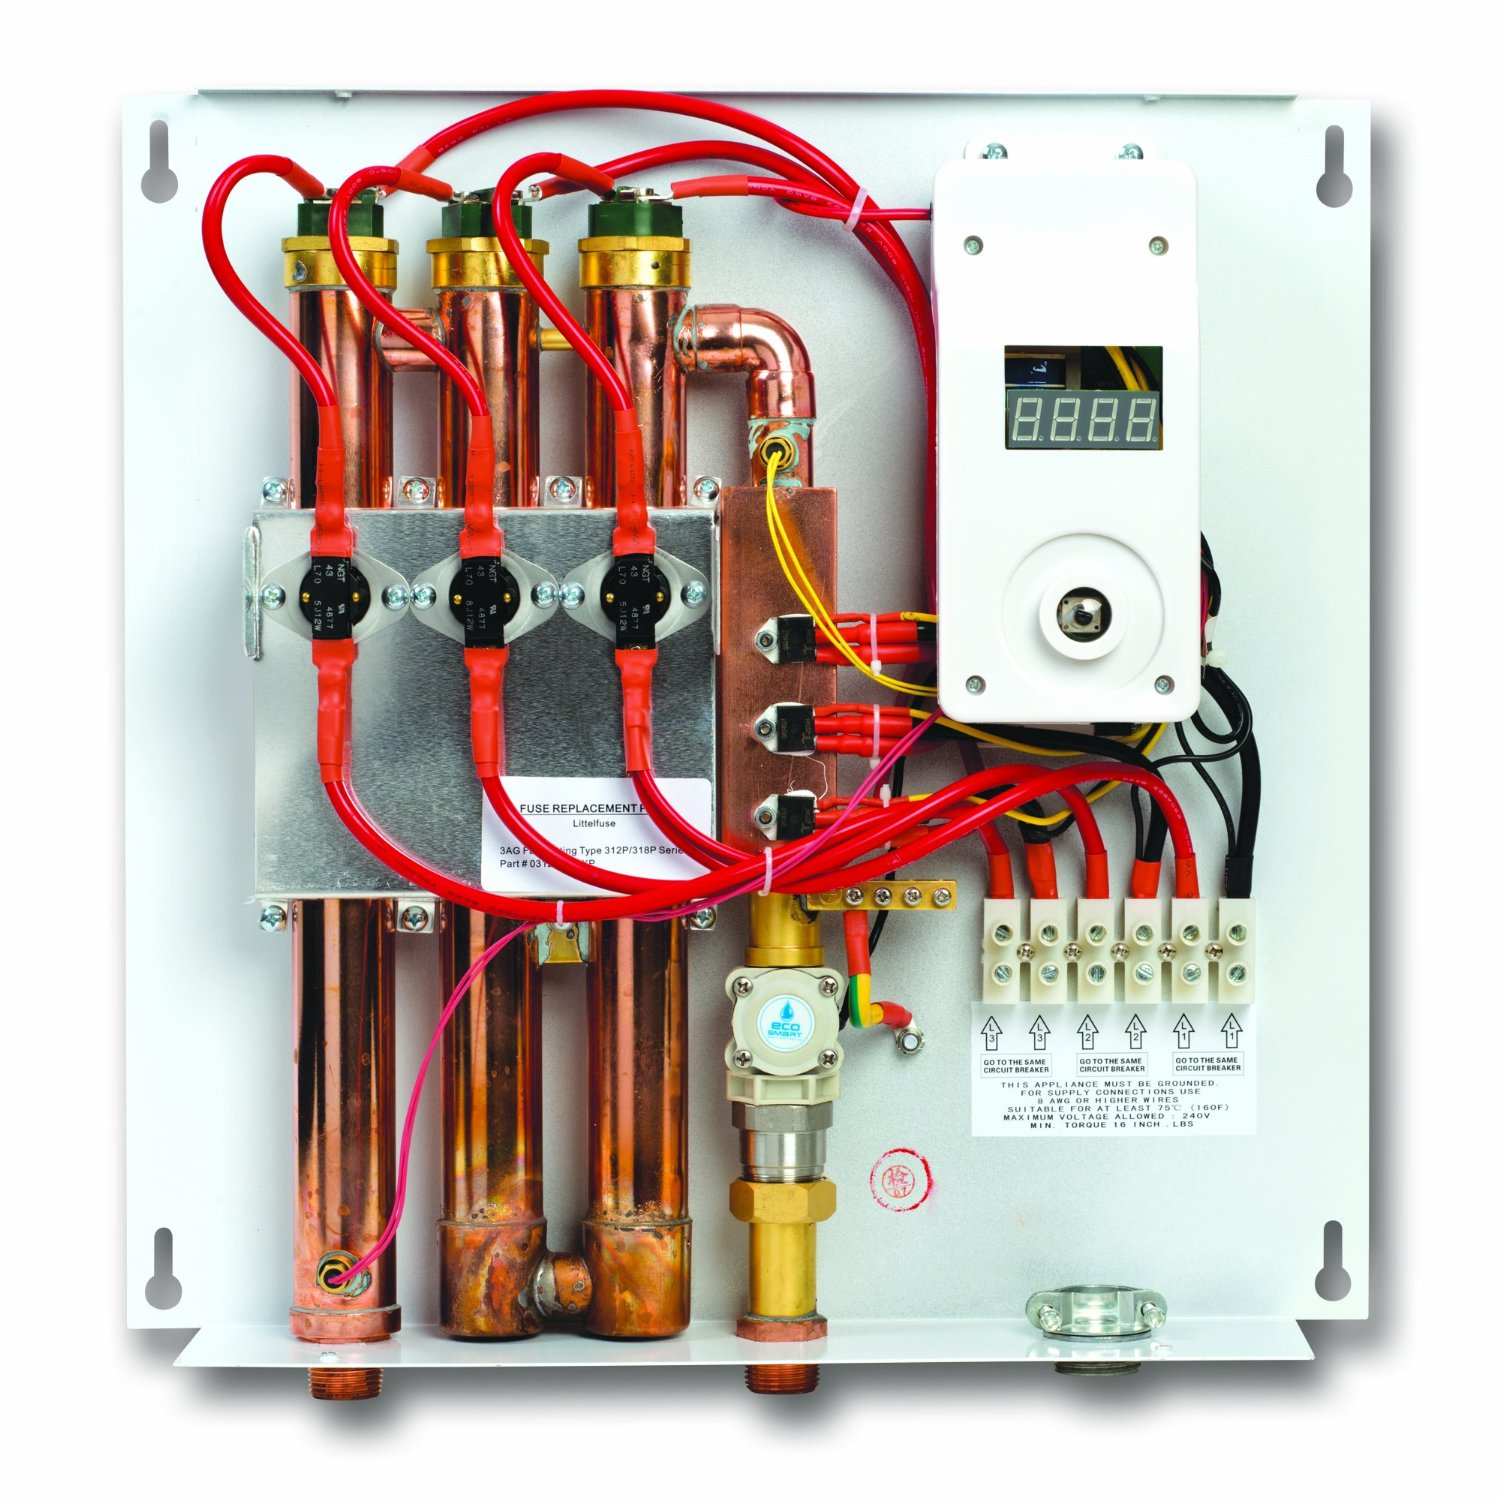 Ecosmart ECO 27 Electric Tankless Water Heater 2 ecosmart eco 27 electric tankless water heater reviews rheem rete 27 wiring diagram at couponss.co